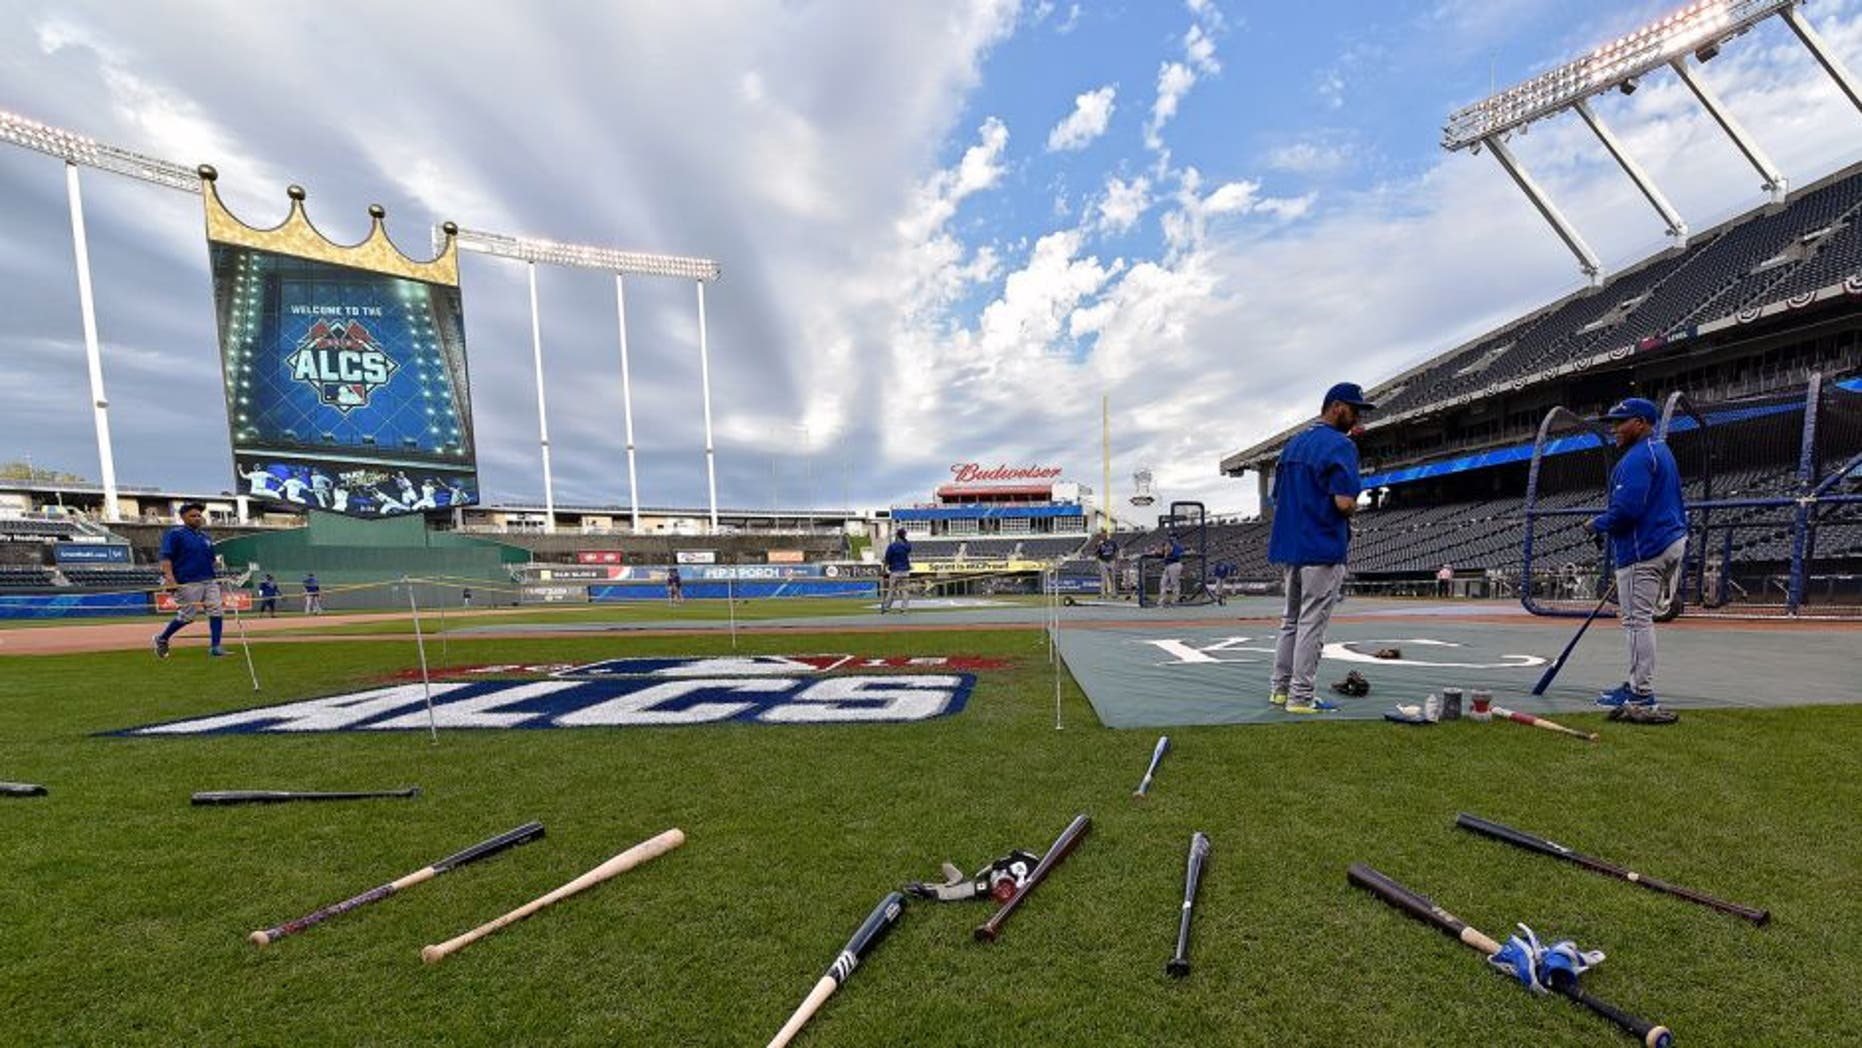 The Toronto Blue Jays take batting practice during a workout on Thursday, Oct. 15, 2015, at Kauffman Stadium in Kansas City, Mo. The Blue Jays meet the Kansas City Royals in Game 1 of the ALCS on Friday. (John Sleezer/Kansas City Star/TNS via Getty Images)